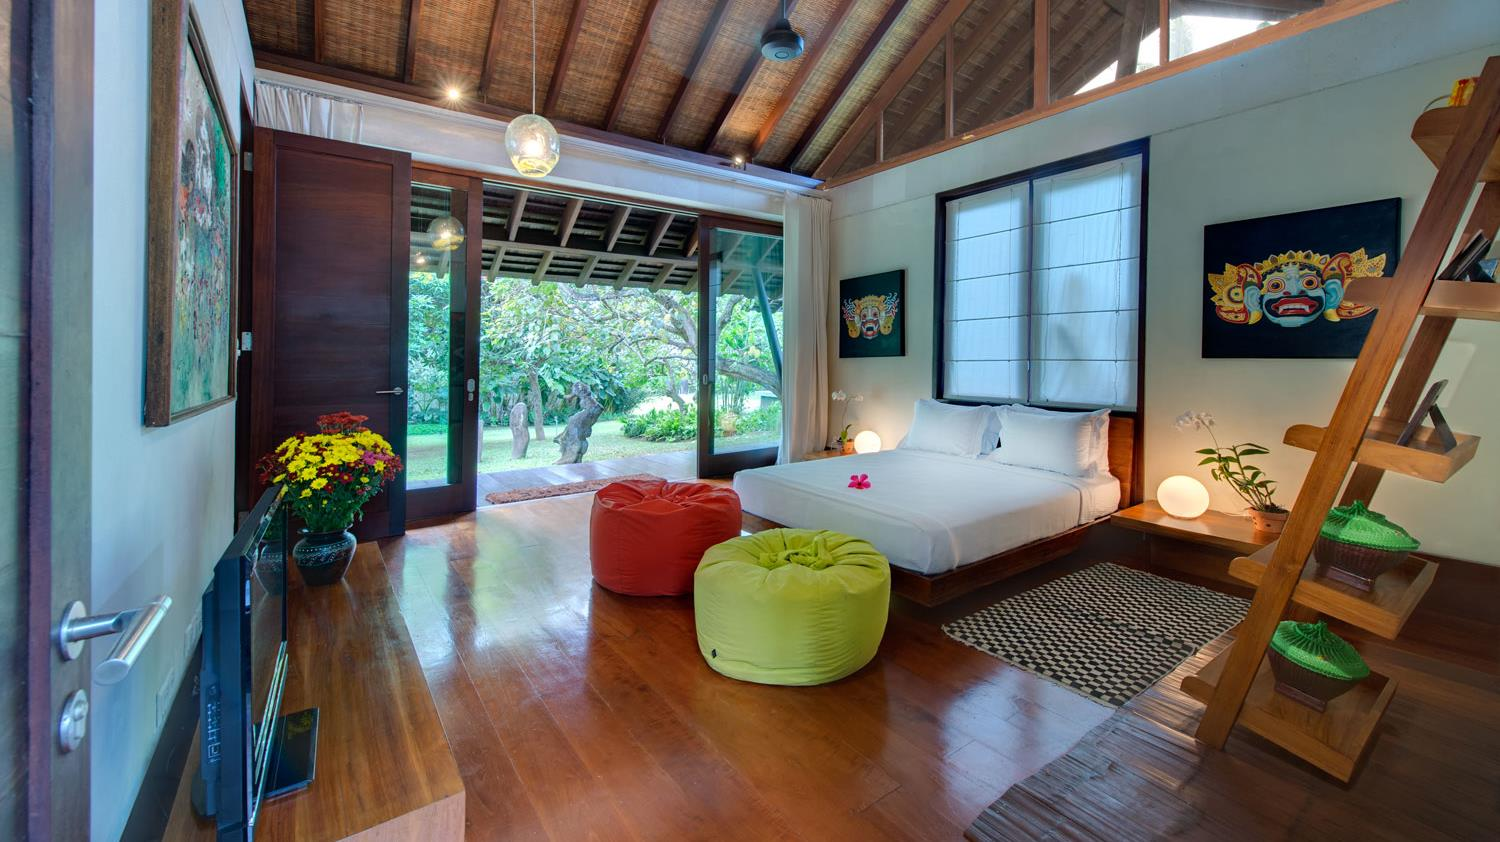 Bedroom with Garden View - Villa Samadhana - Sanur, Bali